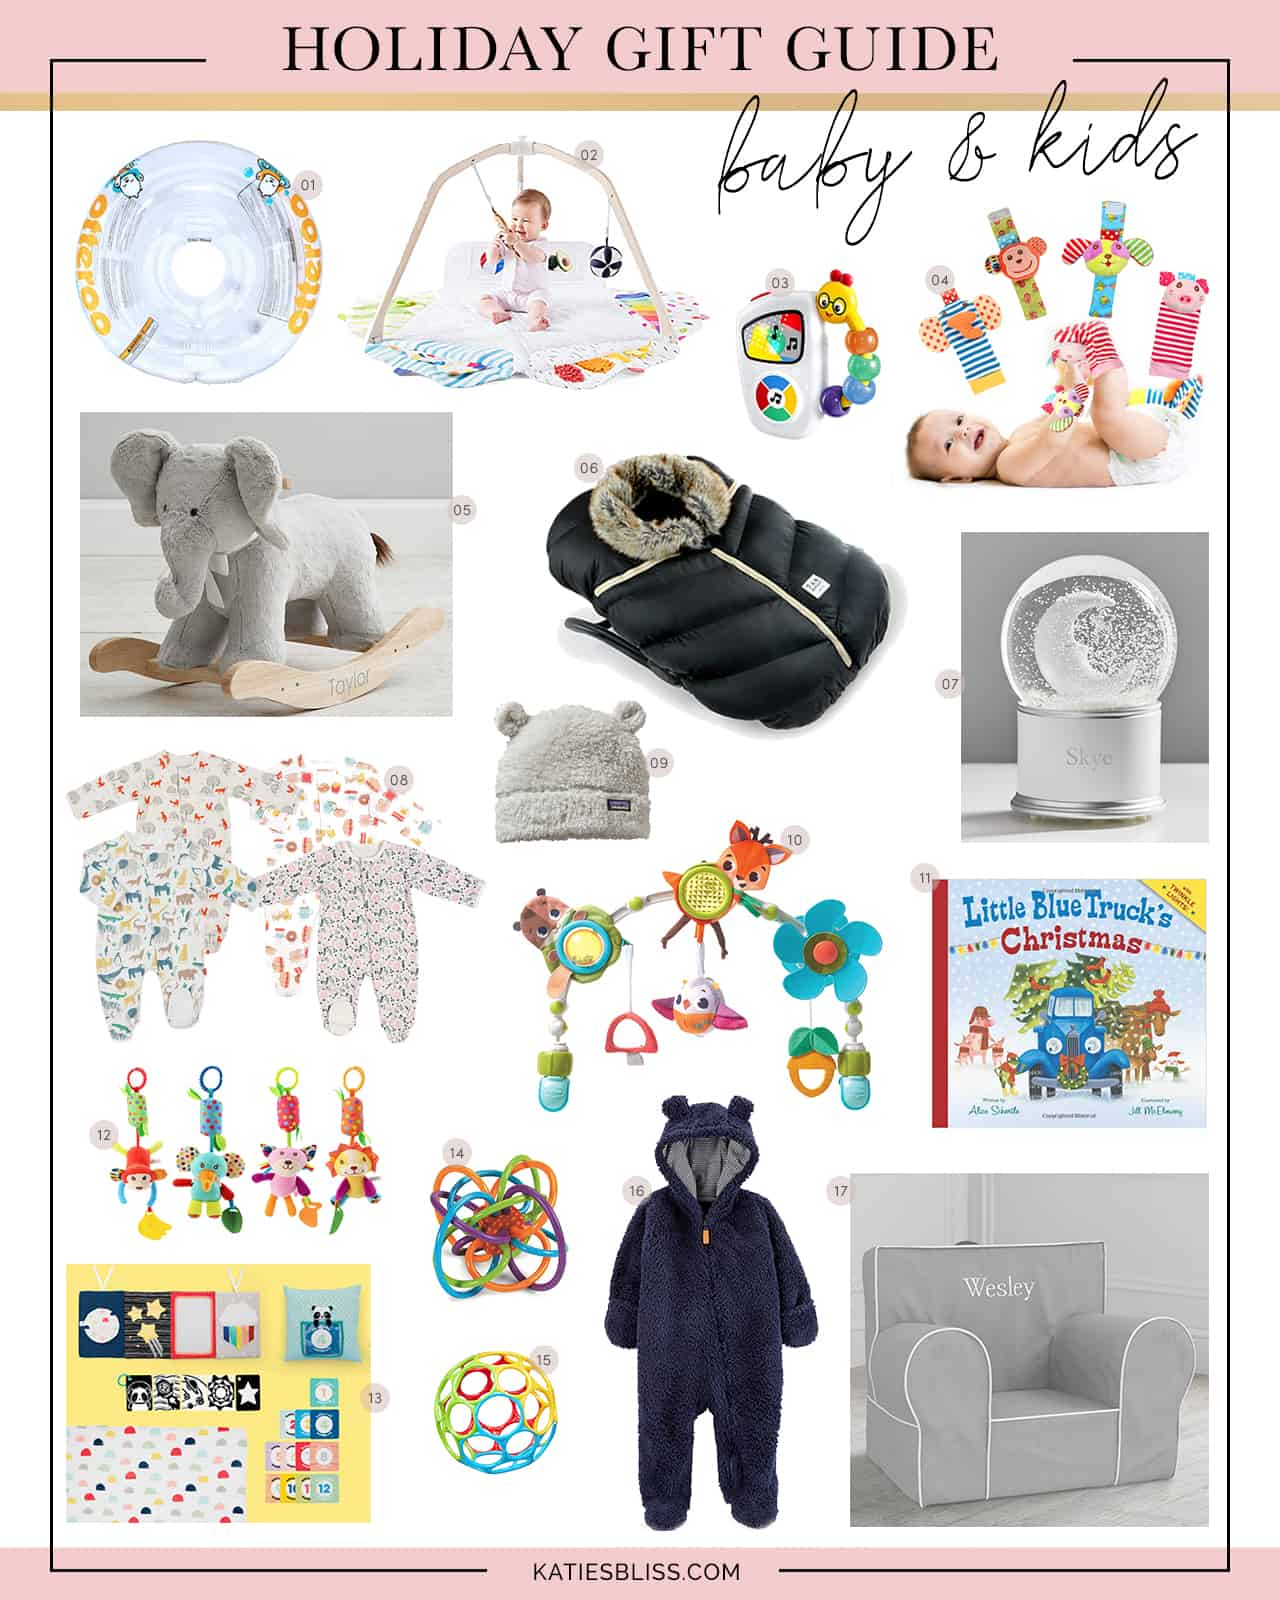 Katies Bliss Gift Guide for babies and kids